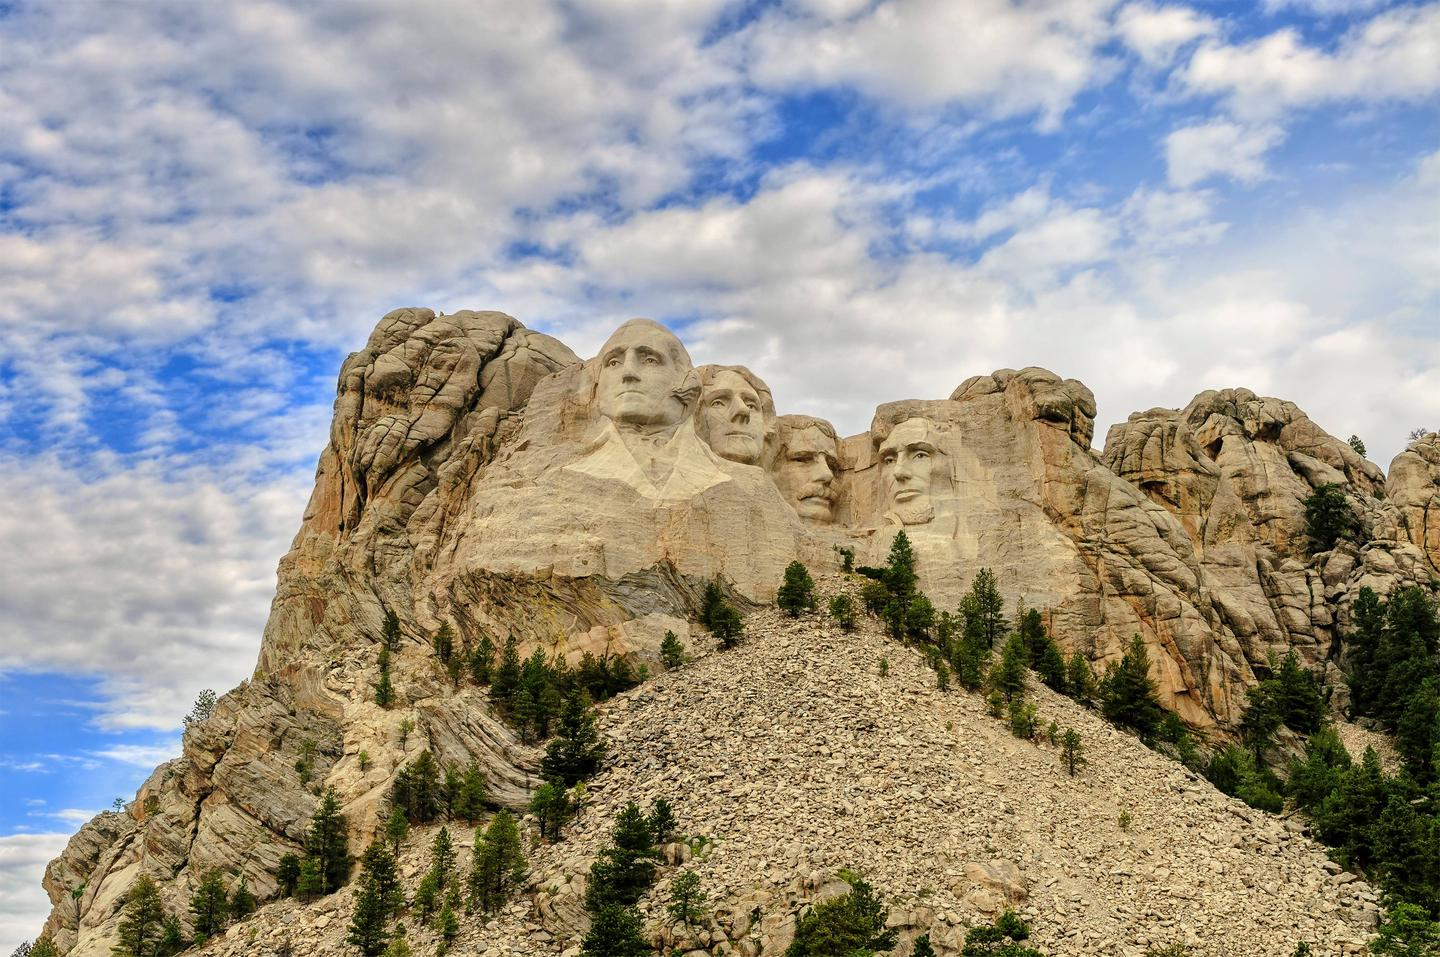 A panoramic view of Mount Rushmore National Memorial